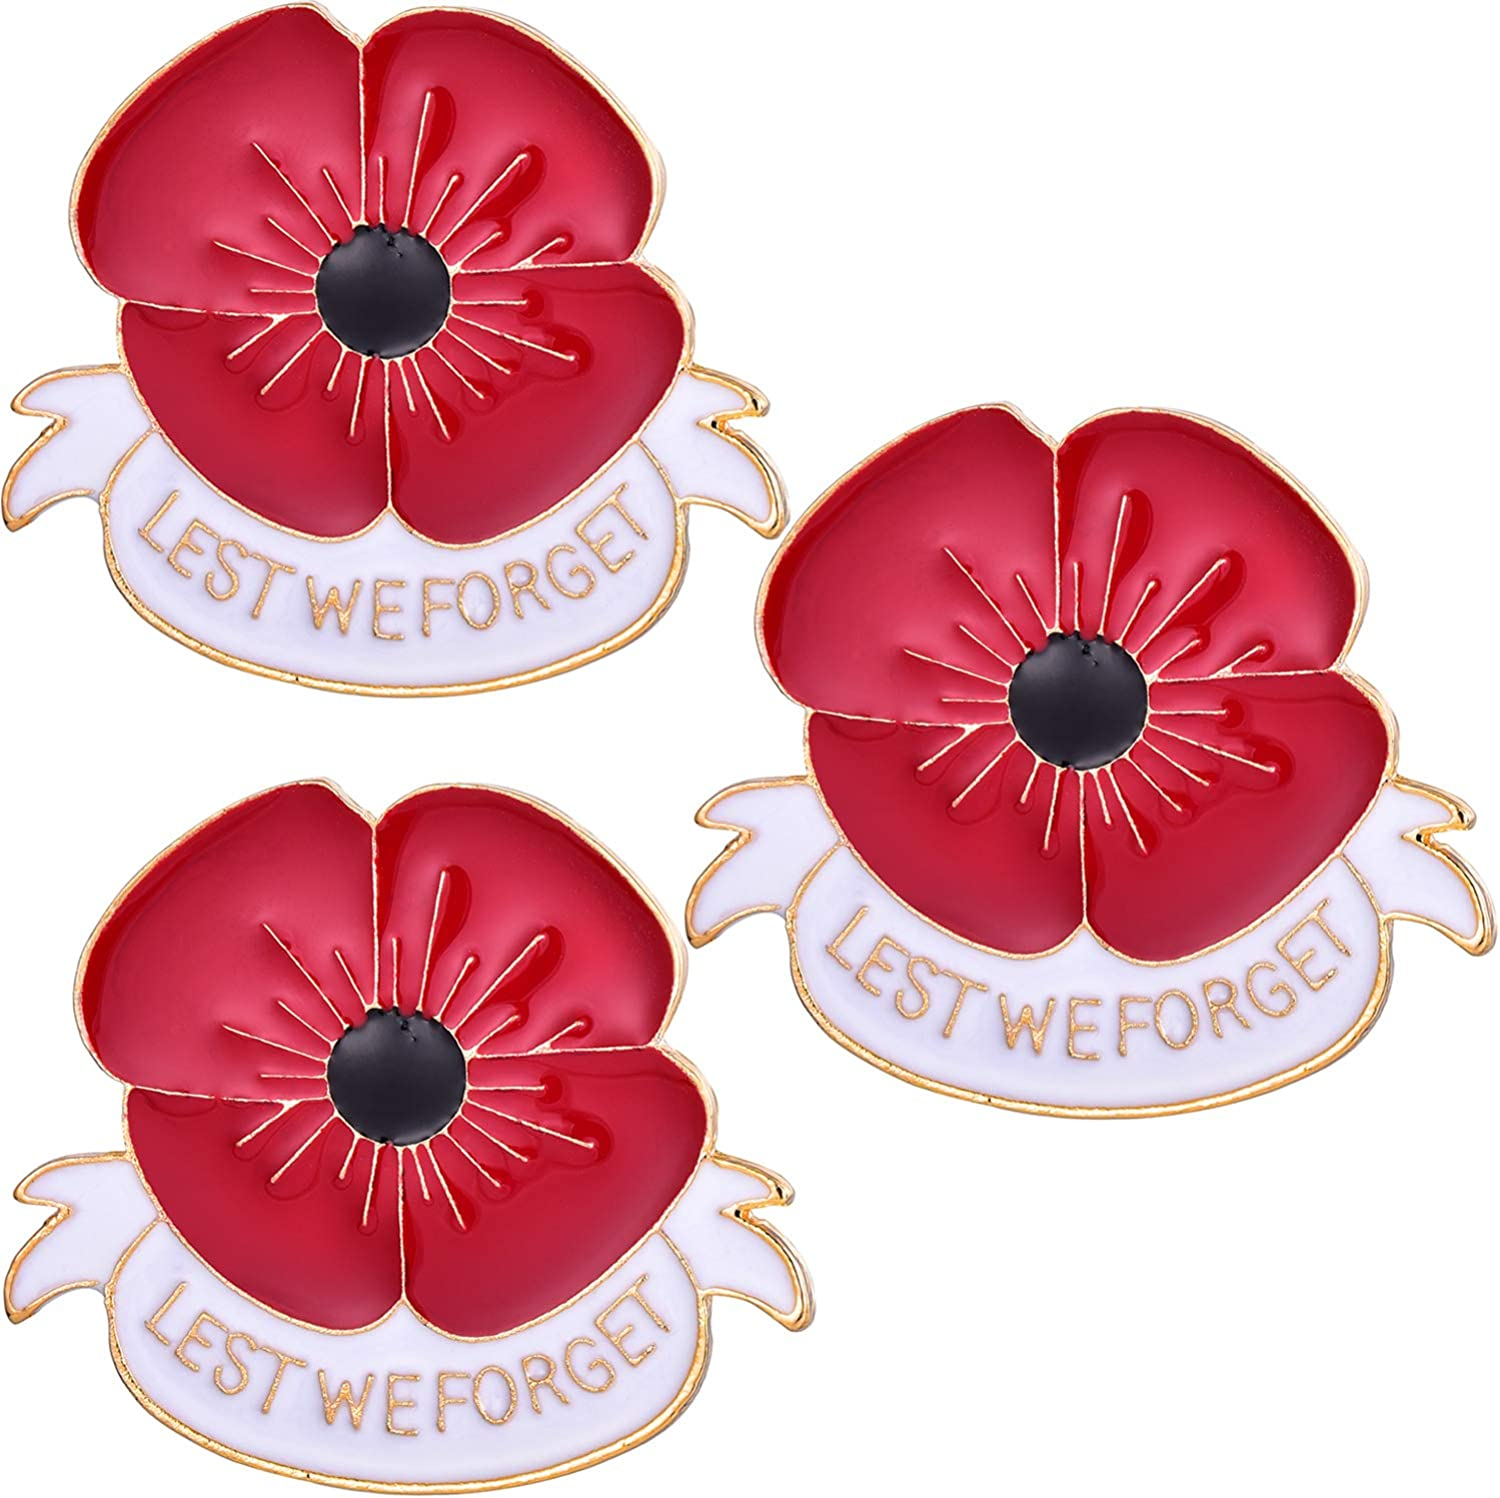 Flower Gift Armistice Remembrance Day WW1 Red Poppy Earrings Sterling Silver